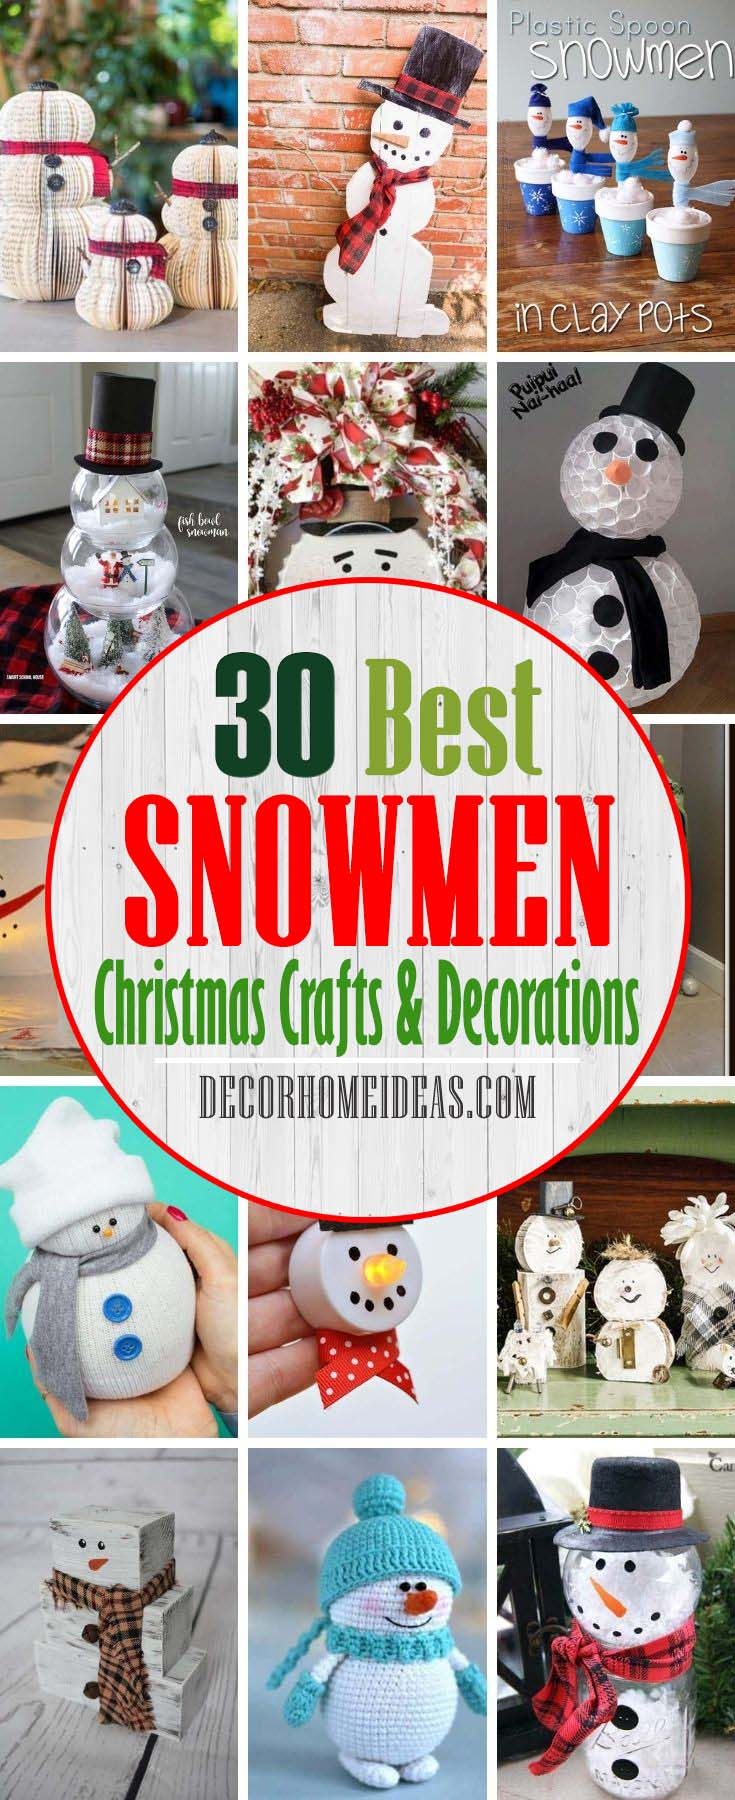 Best Snowmen Craft Ideas And Decorations. This winter, try out these snowman craft ideas that are perfect for kids, preschoolers, and adults. You could even make these DIY projects with the intent to sell them at craft shows. #decorhomeideas